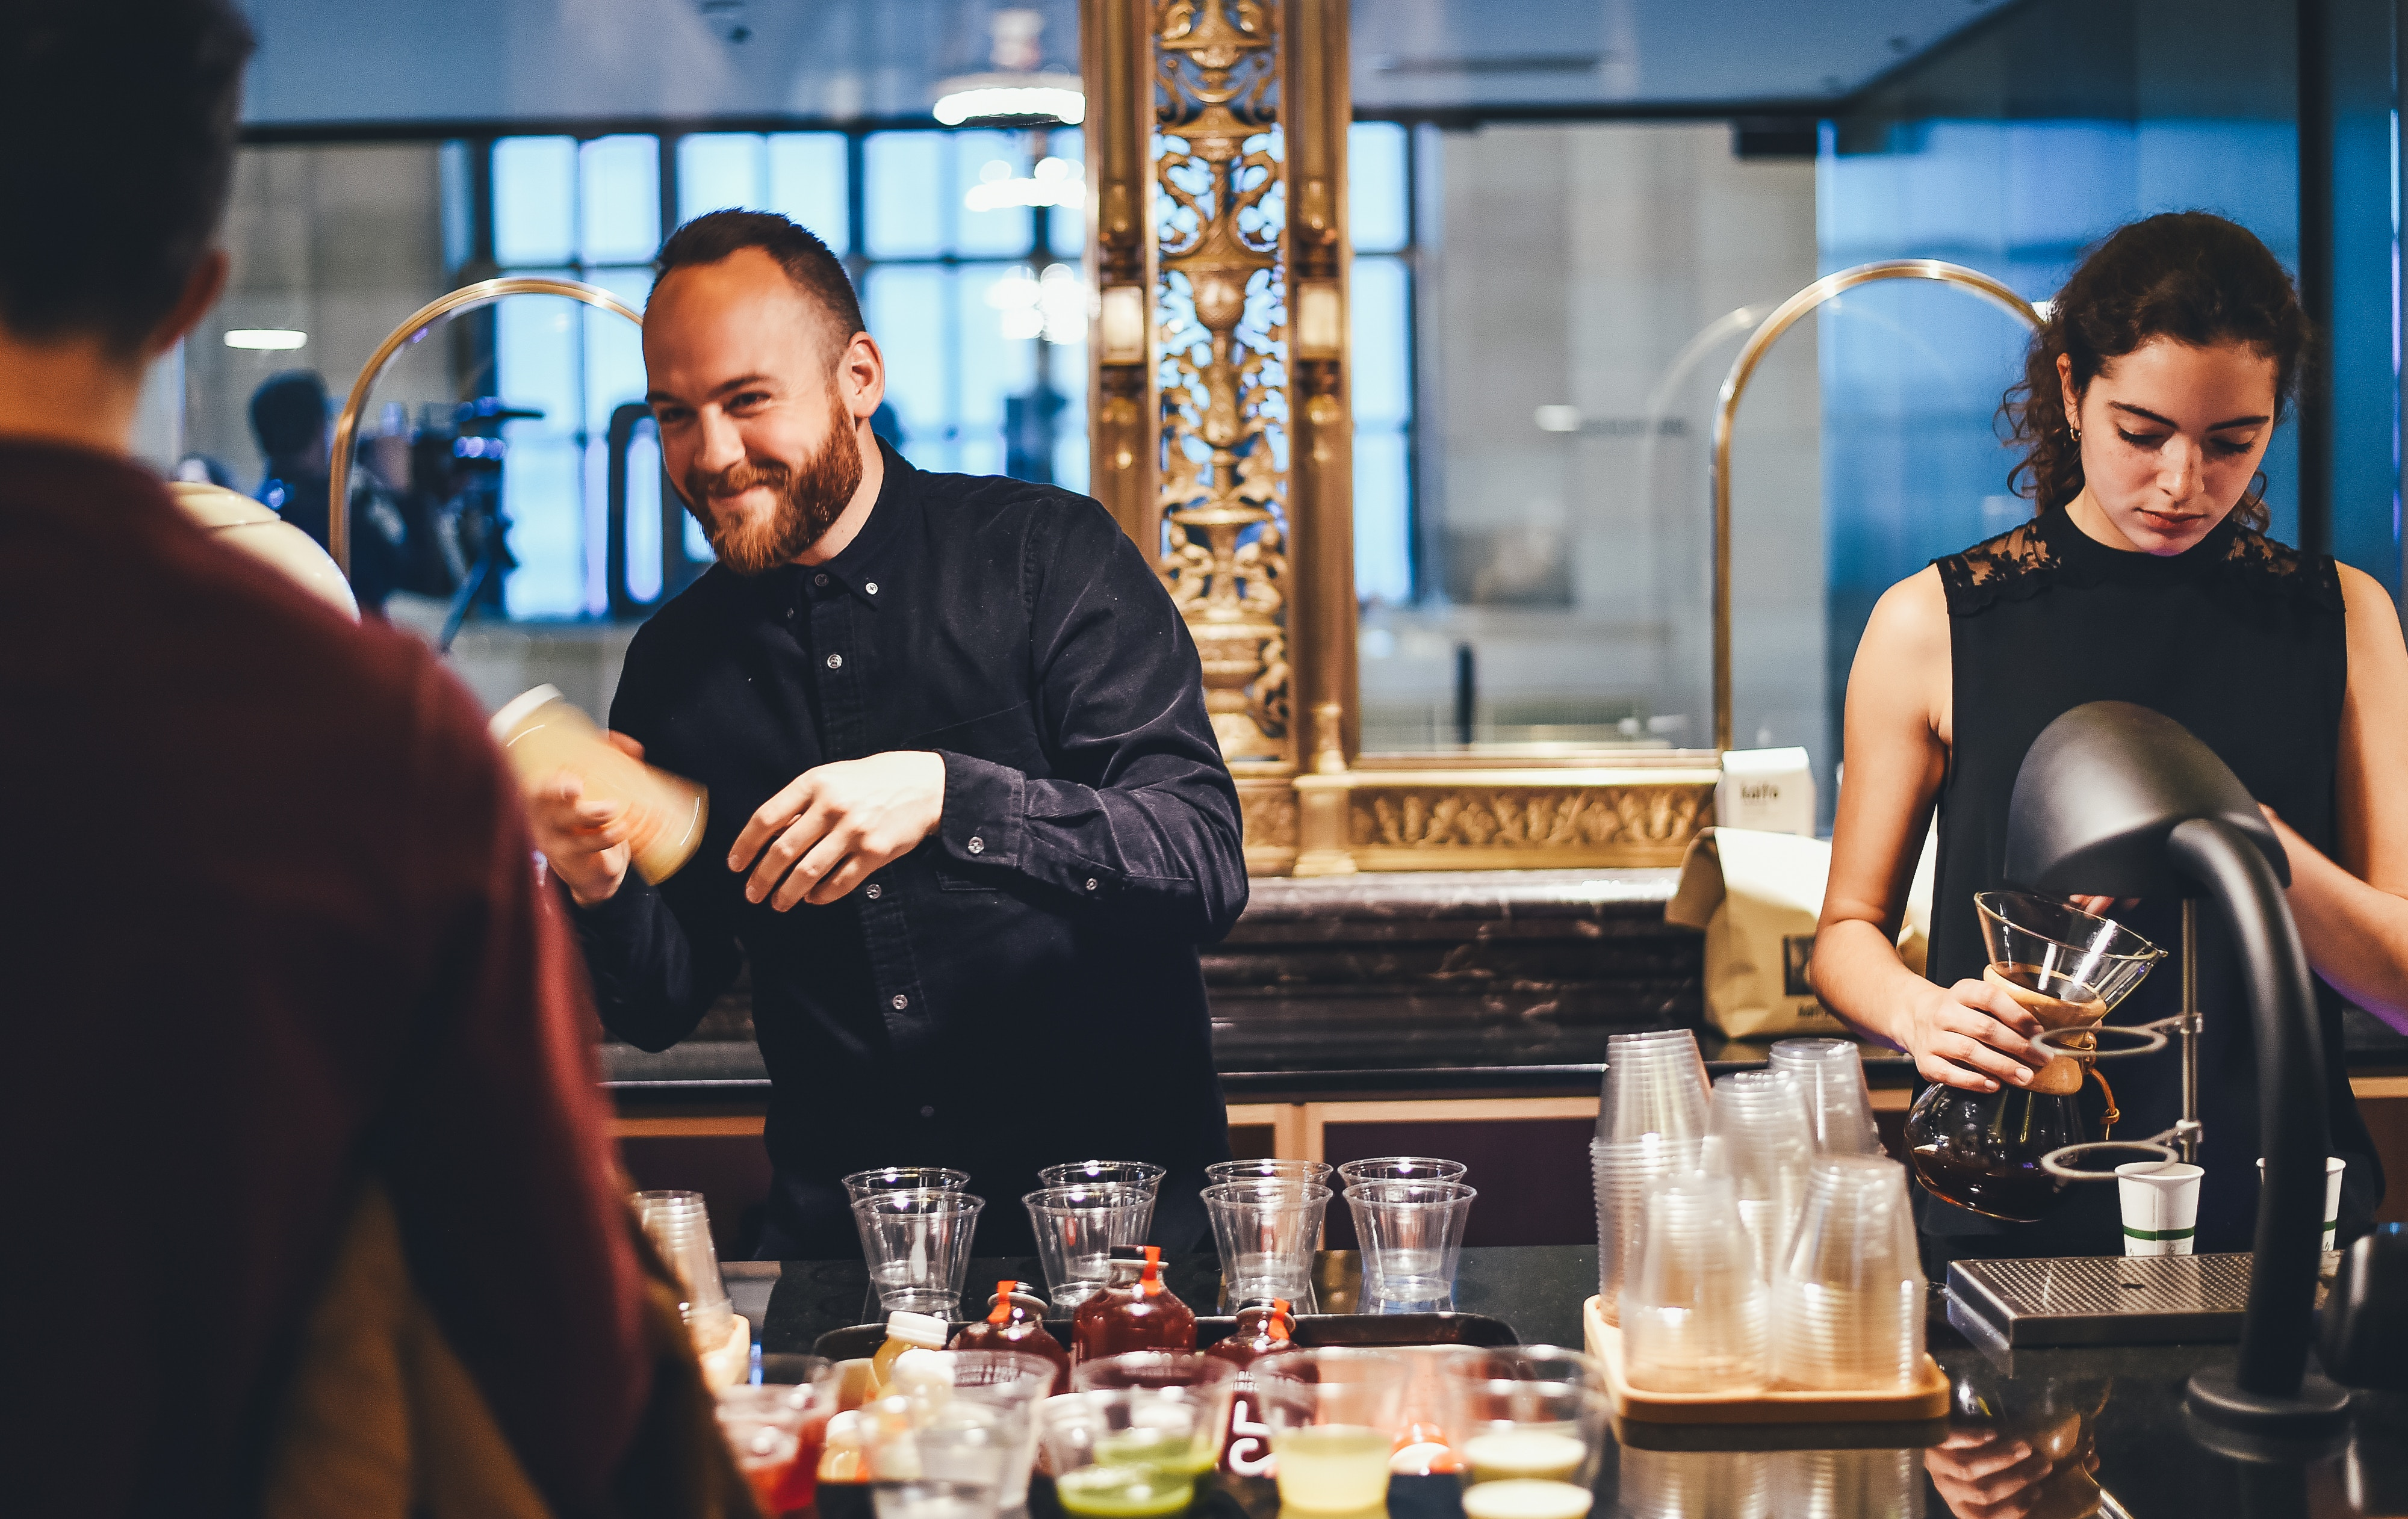 Four Things You MUST Keep Clean in Your Bar